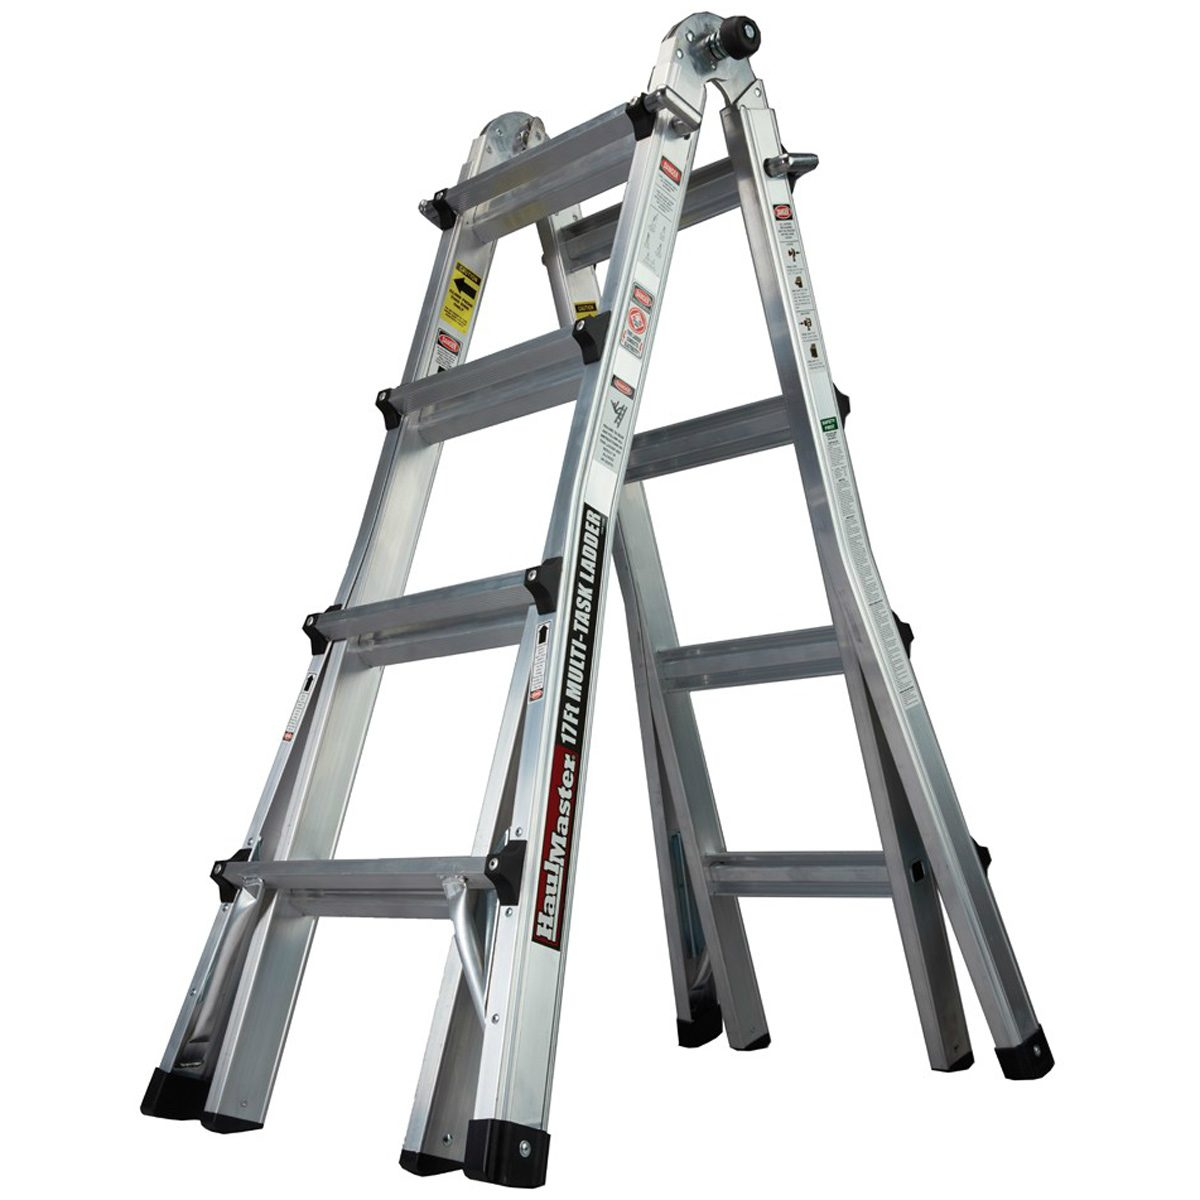 Collapsible Multi-Task Ladder